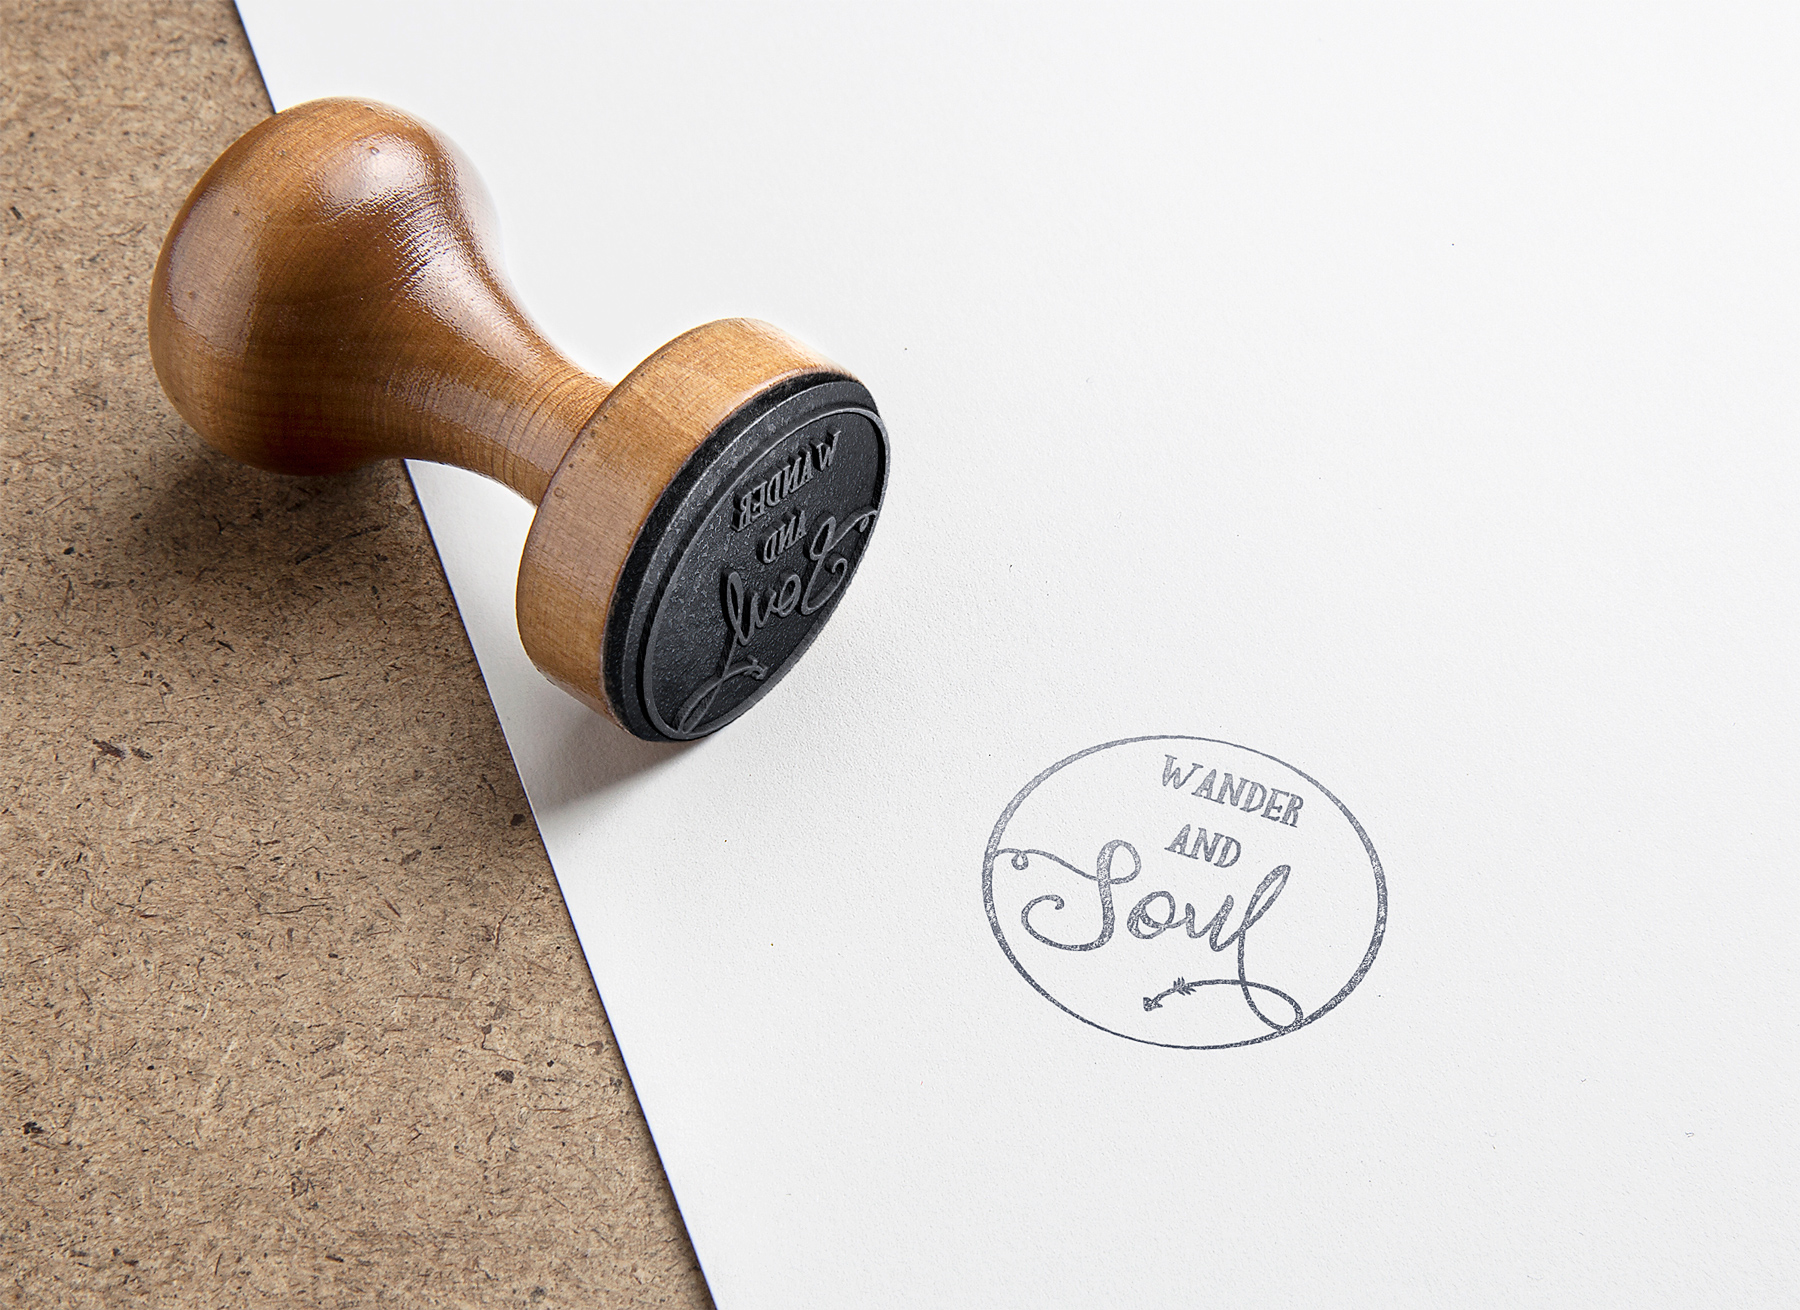 Rubber-Stamp-MockUp-copy.jpg